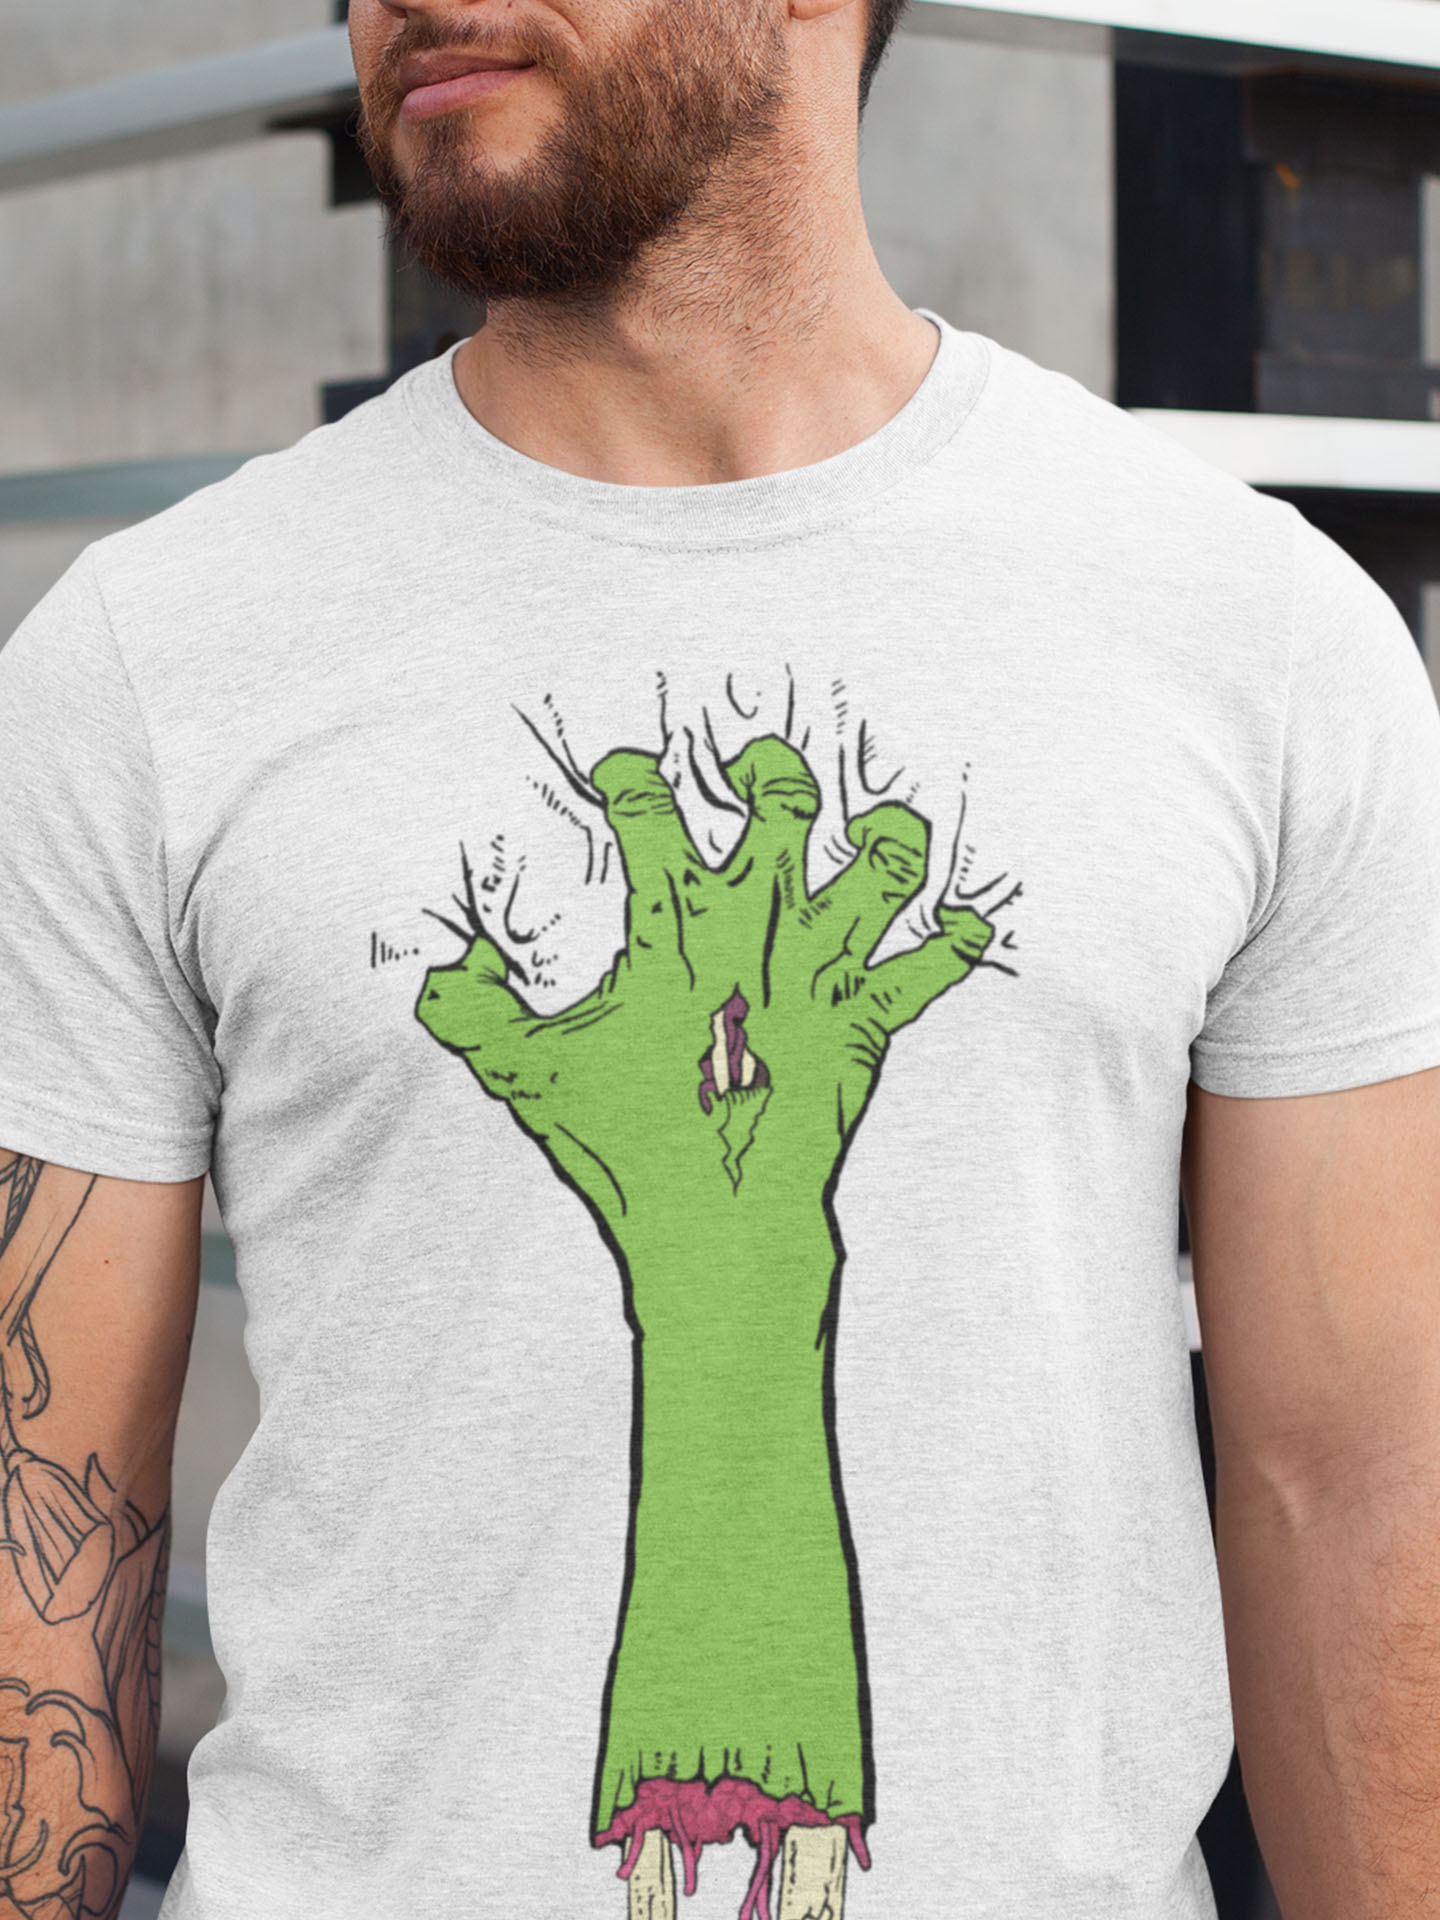 Spredshirt-Prints-Trailfire_0041_heathered-t-shirt-mockup-featuring-a-man-with-tattoos-on-one-arm-28616